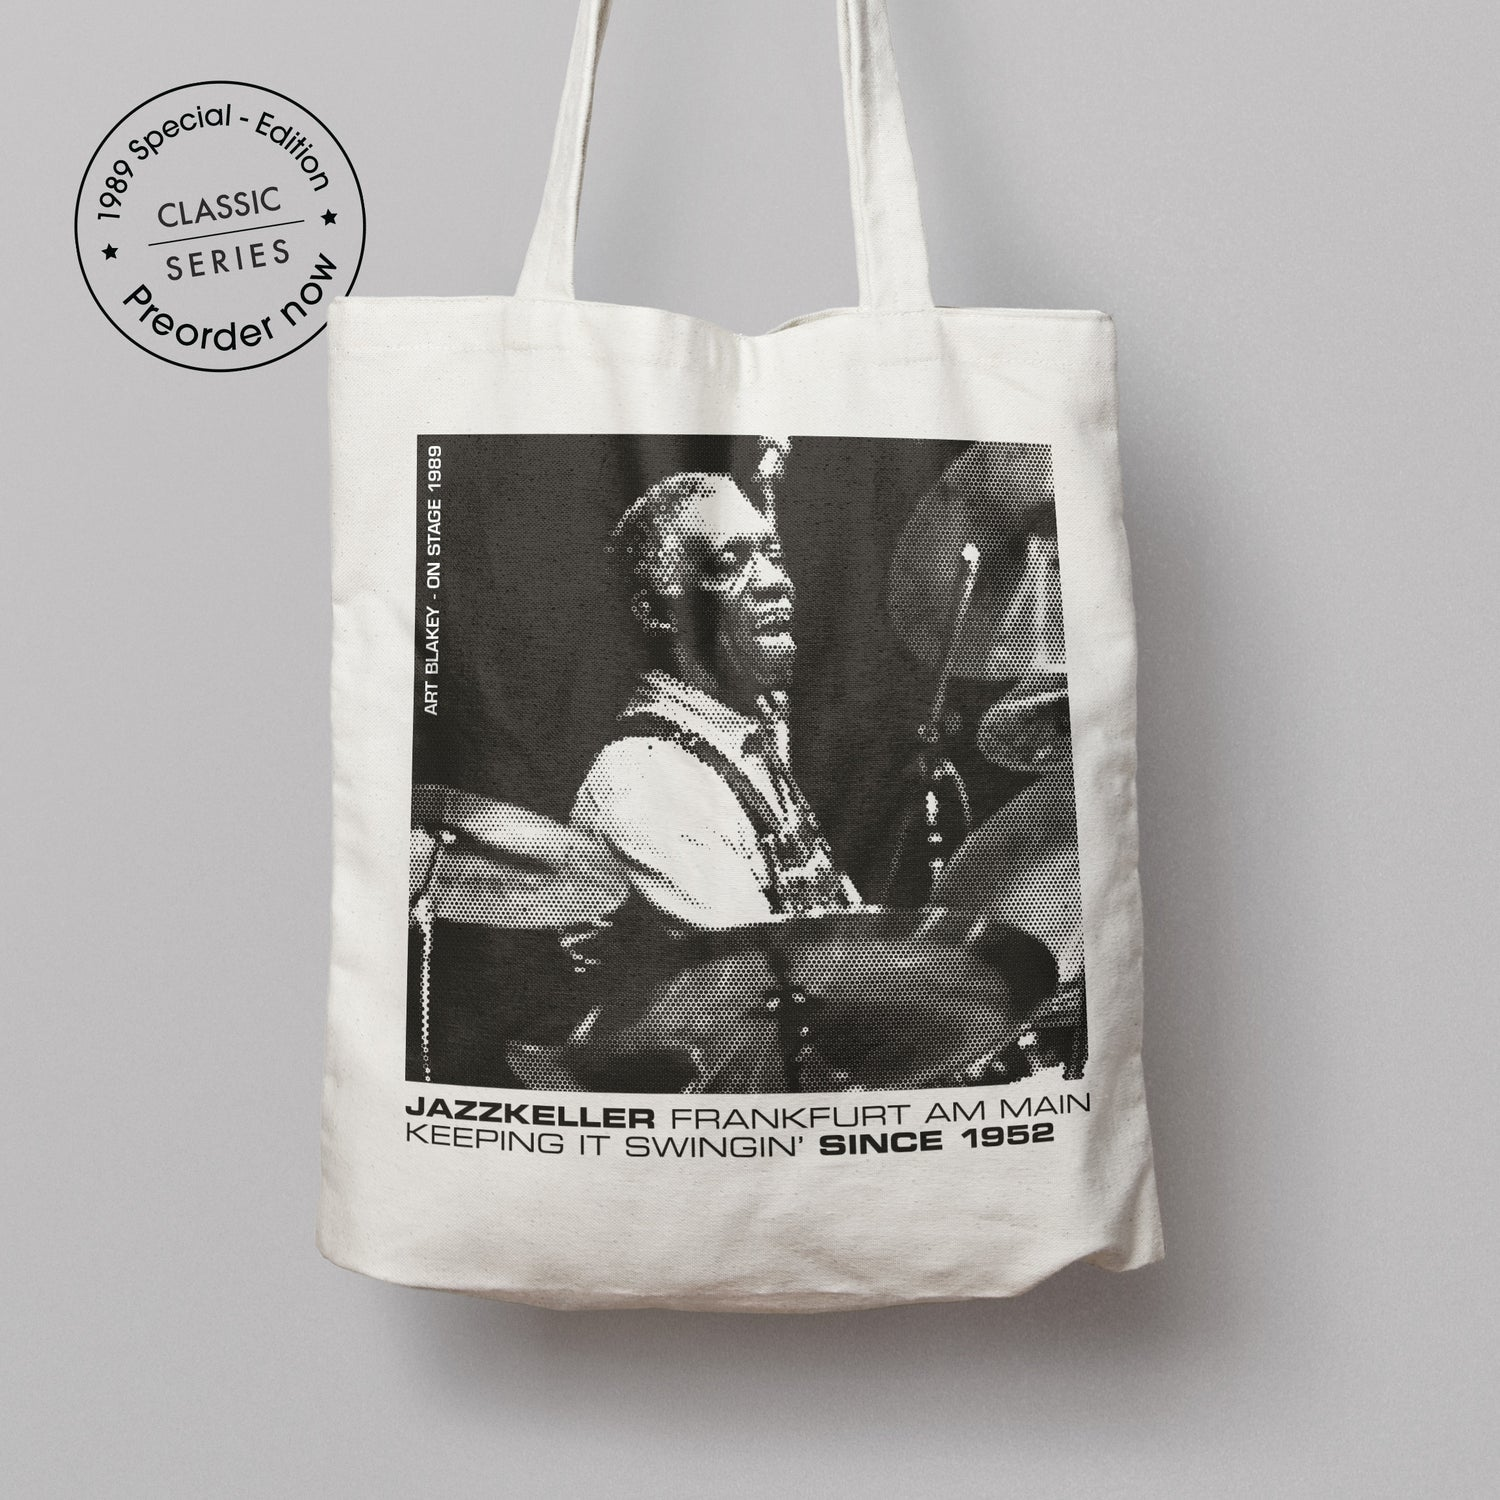 Image of LAST Bag! 1989 Special-Edition Jutebeutel/tote bag